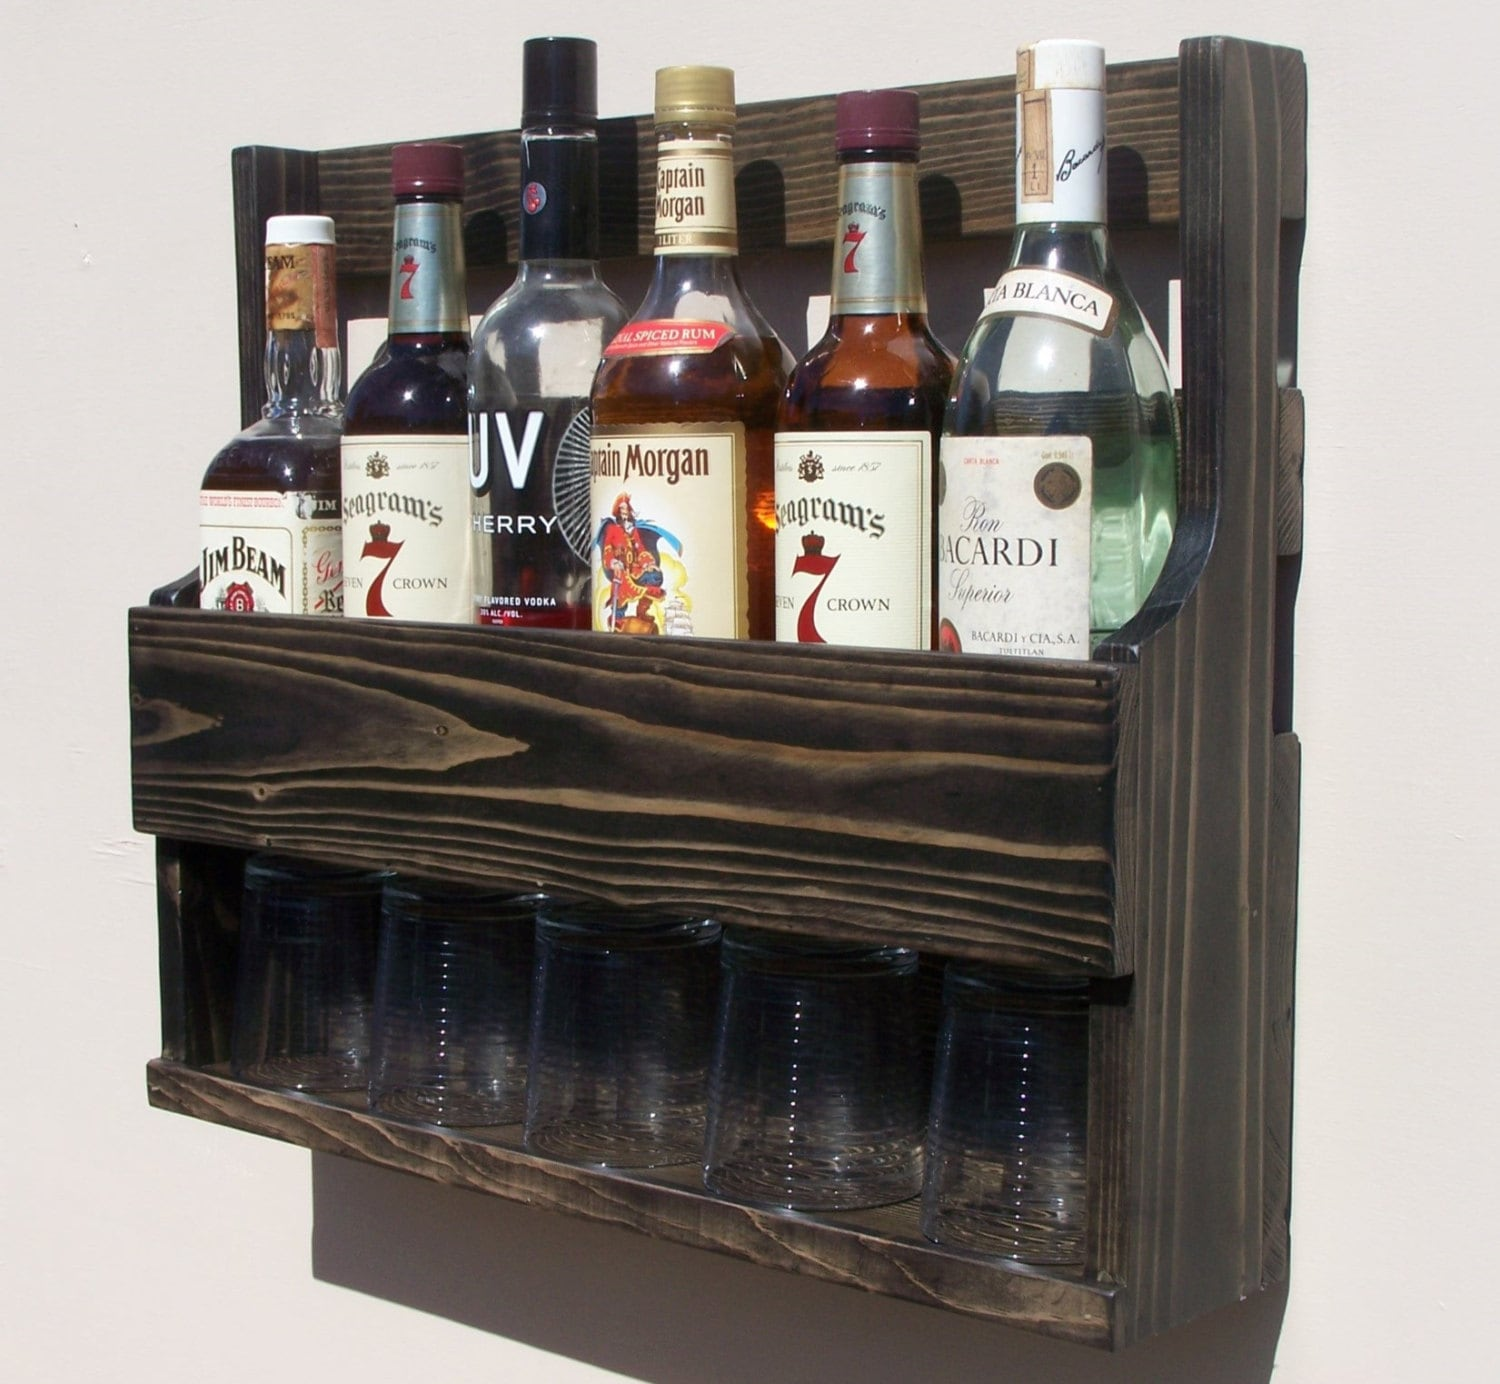 115 Bottle Wall Mount Liquor Rack With Shelf Which Holds Up To 15